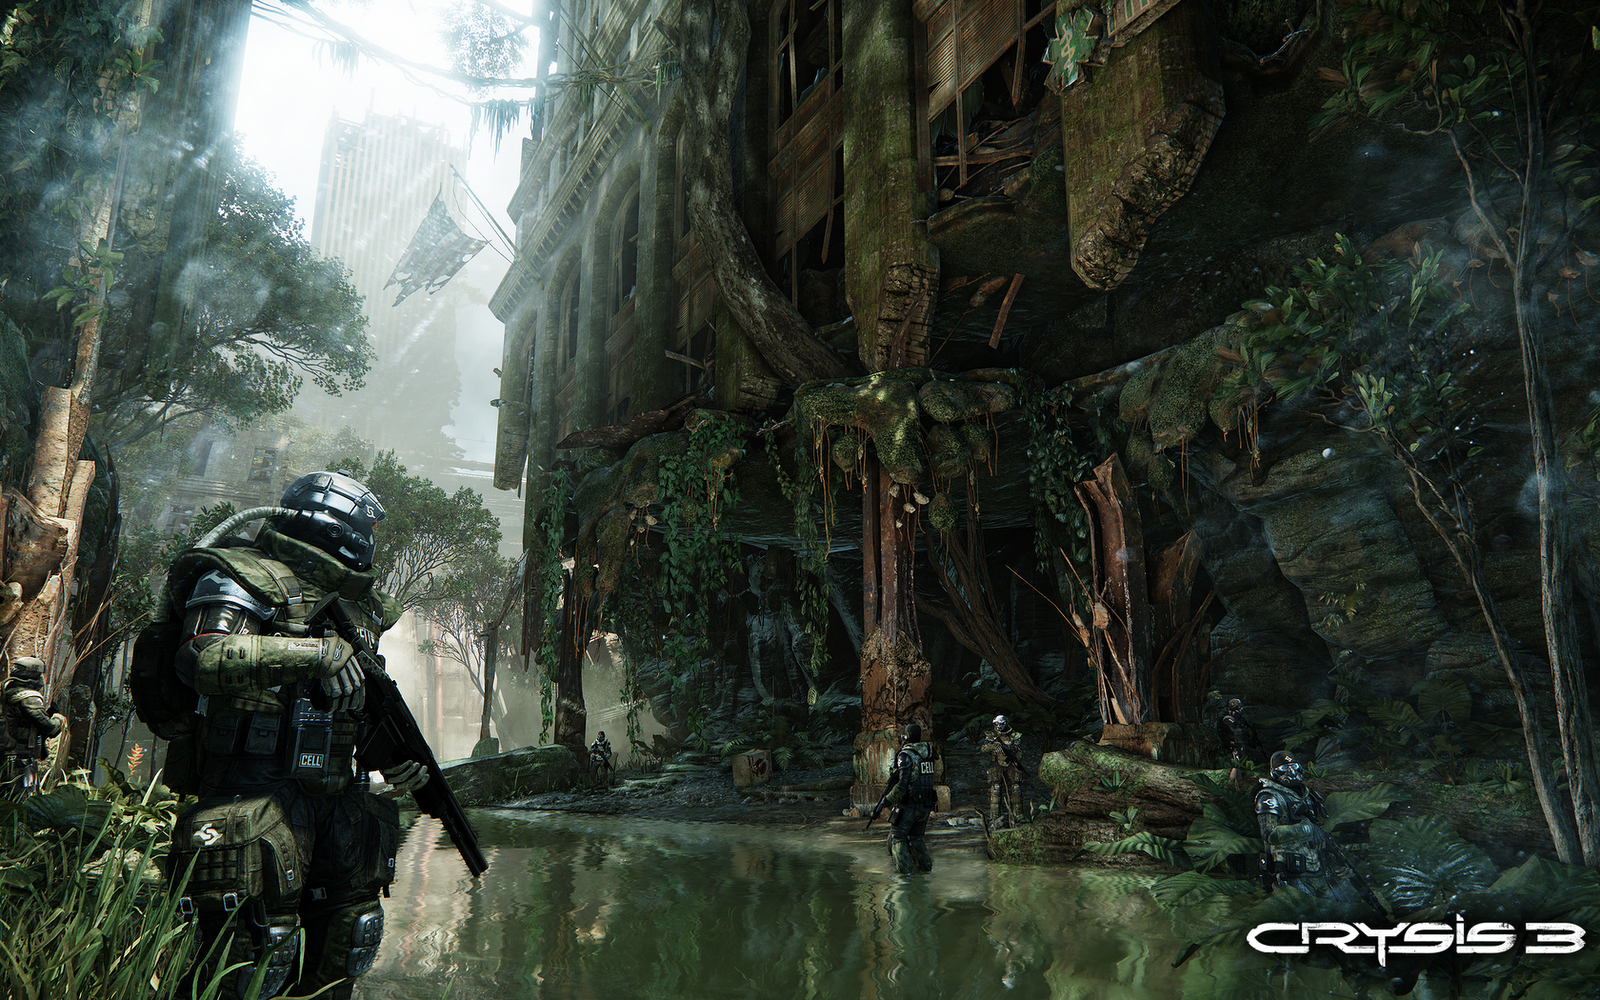 Crysis 3 2013 Video Game 4k Hd Desktop Wallpaper For 4k: Crysis 3 Pictures - HD Desktop Wallpapers